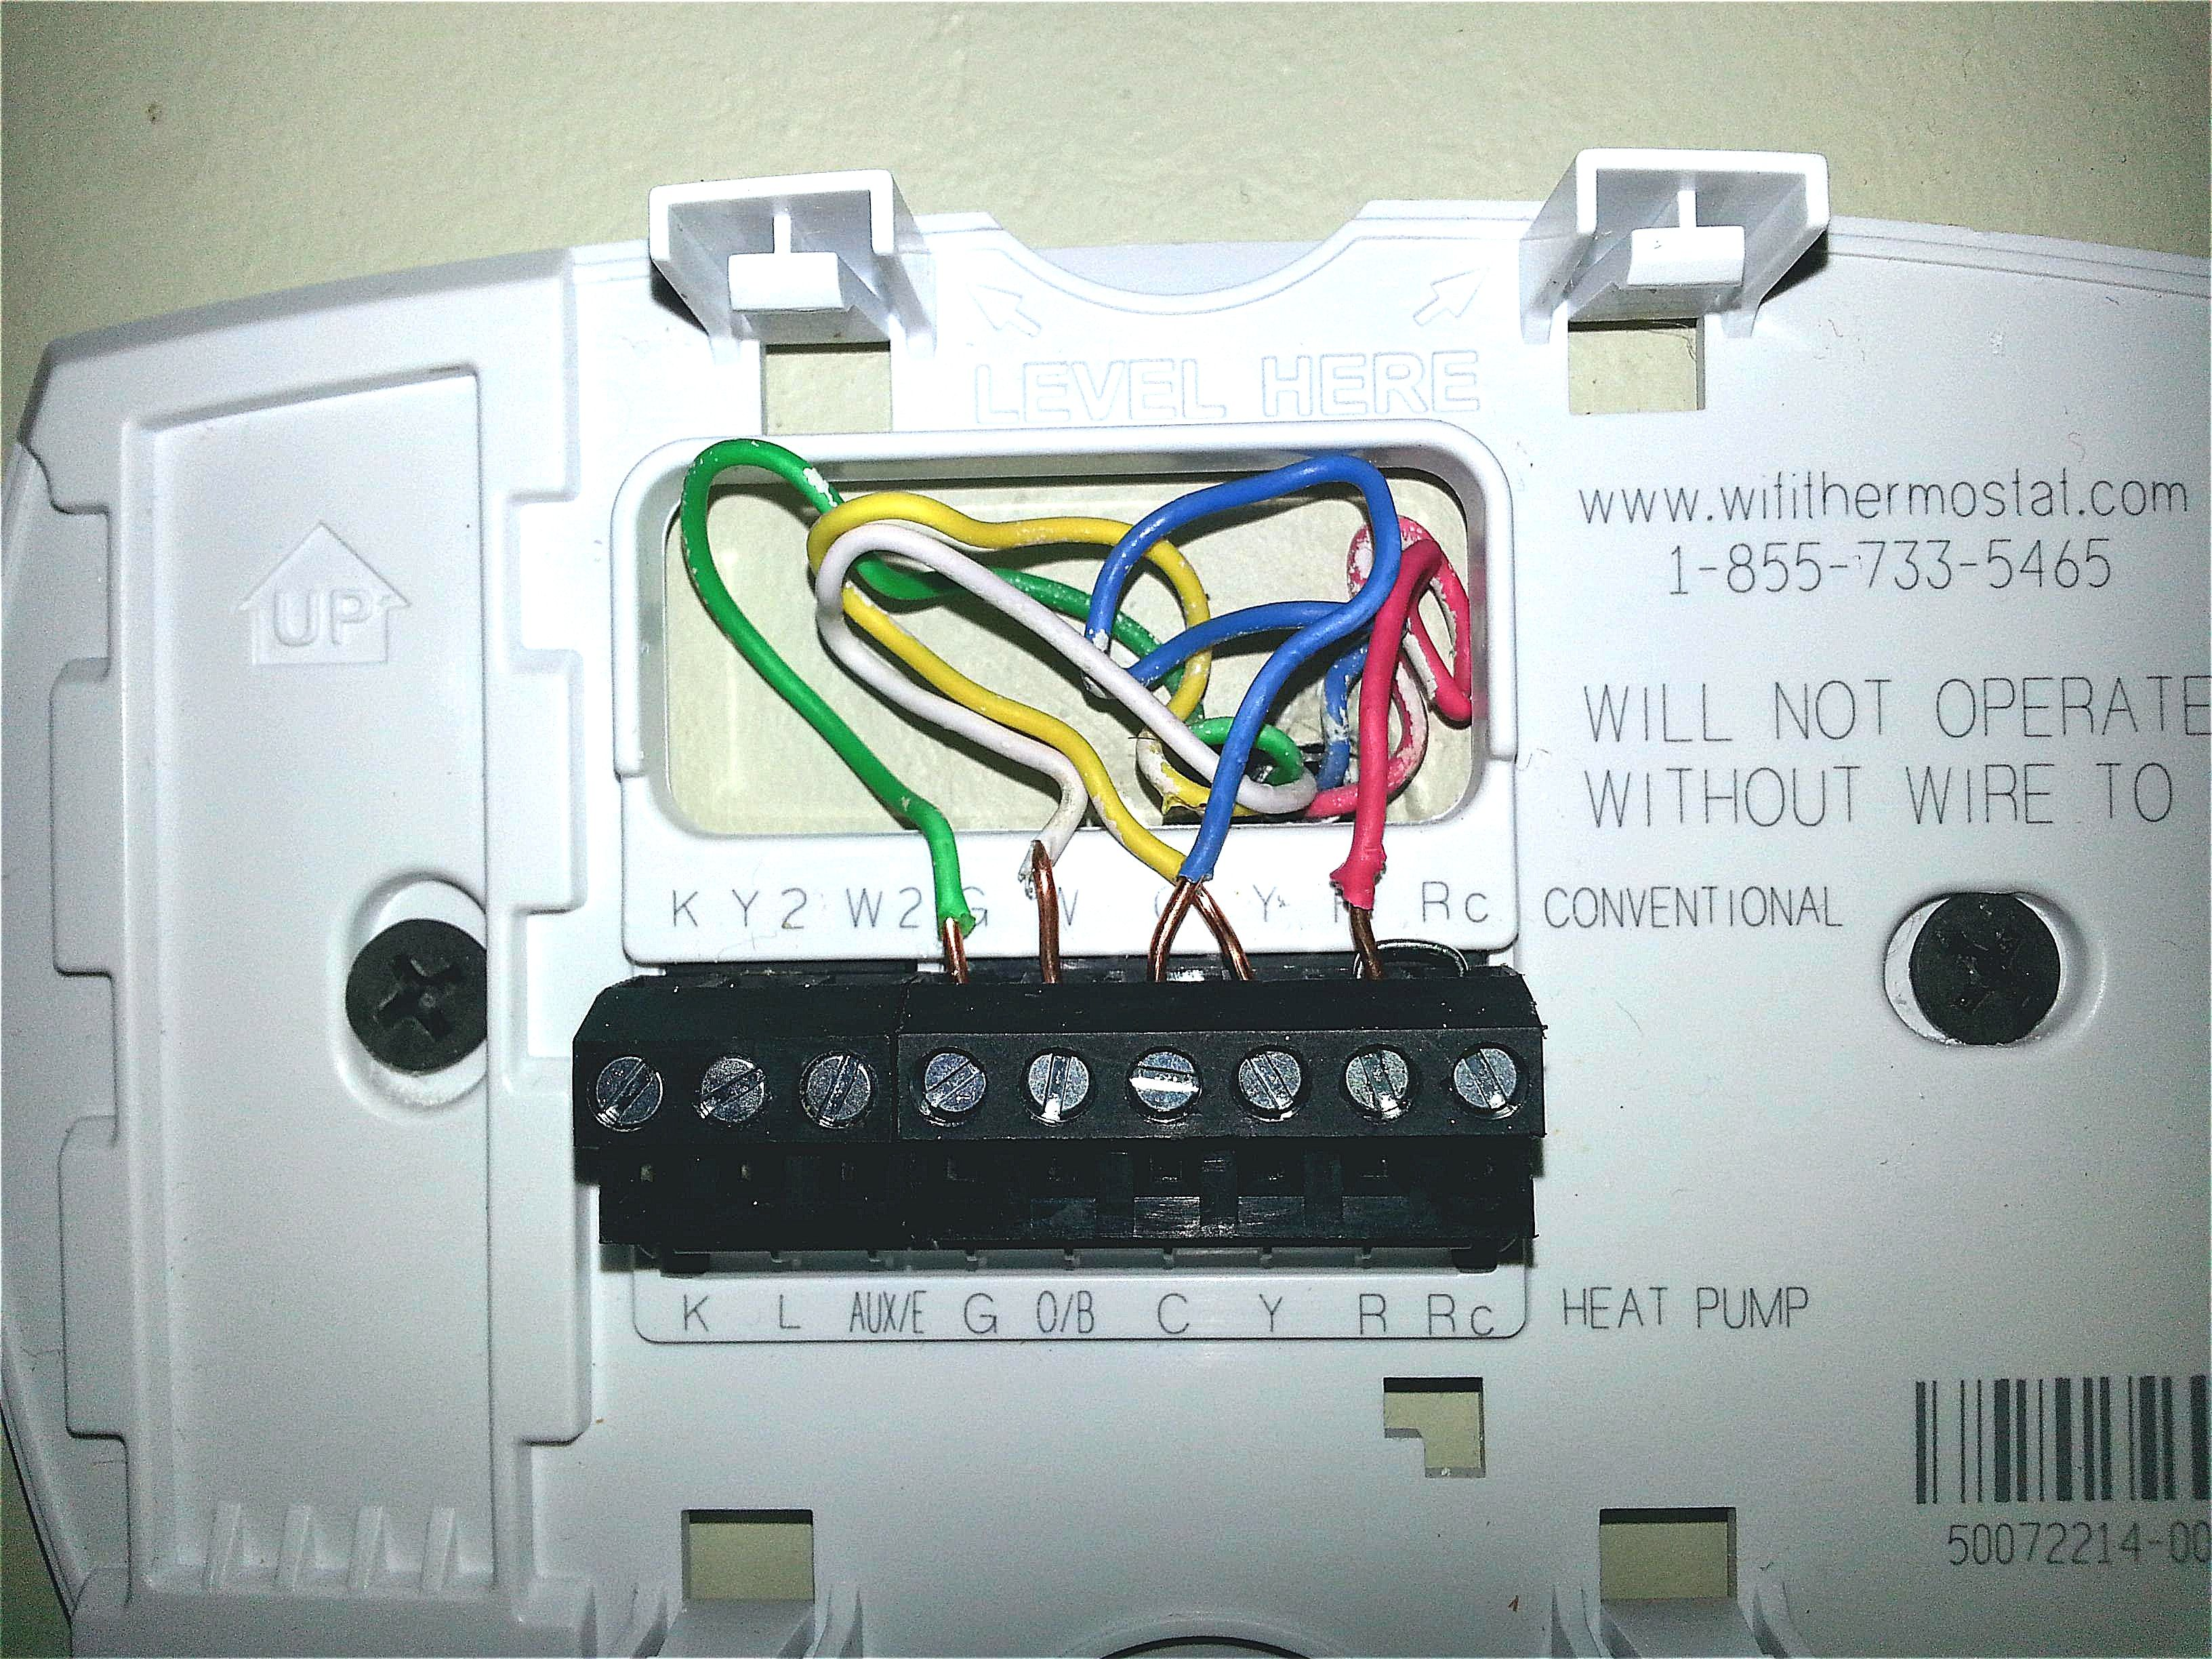 Pictures Of Wiring Diagram For Honeywell Thermostat Rth221 5 2 Day  Throughout | Honeywell thermostats, Honeywell wifi thermostat, Thermostat  wiringPinterest